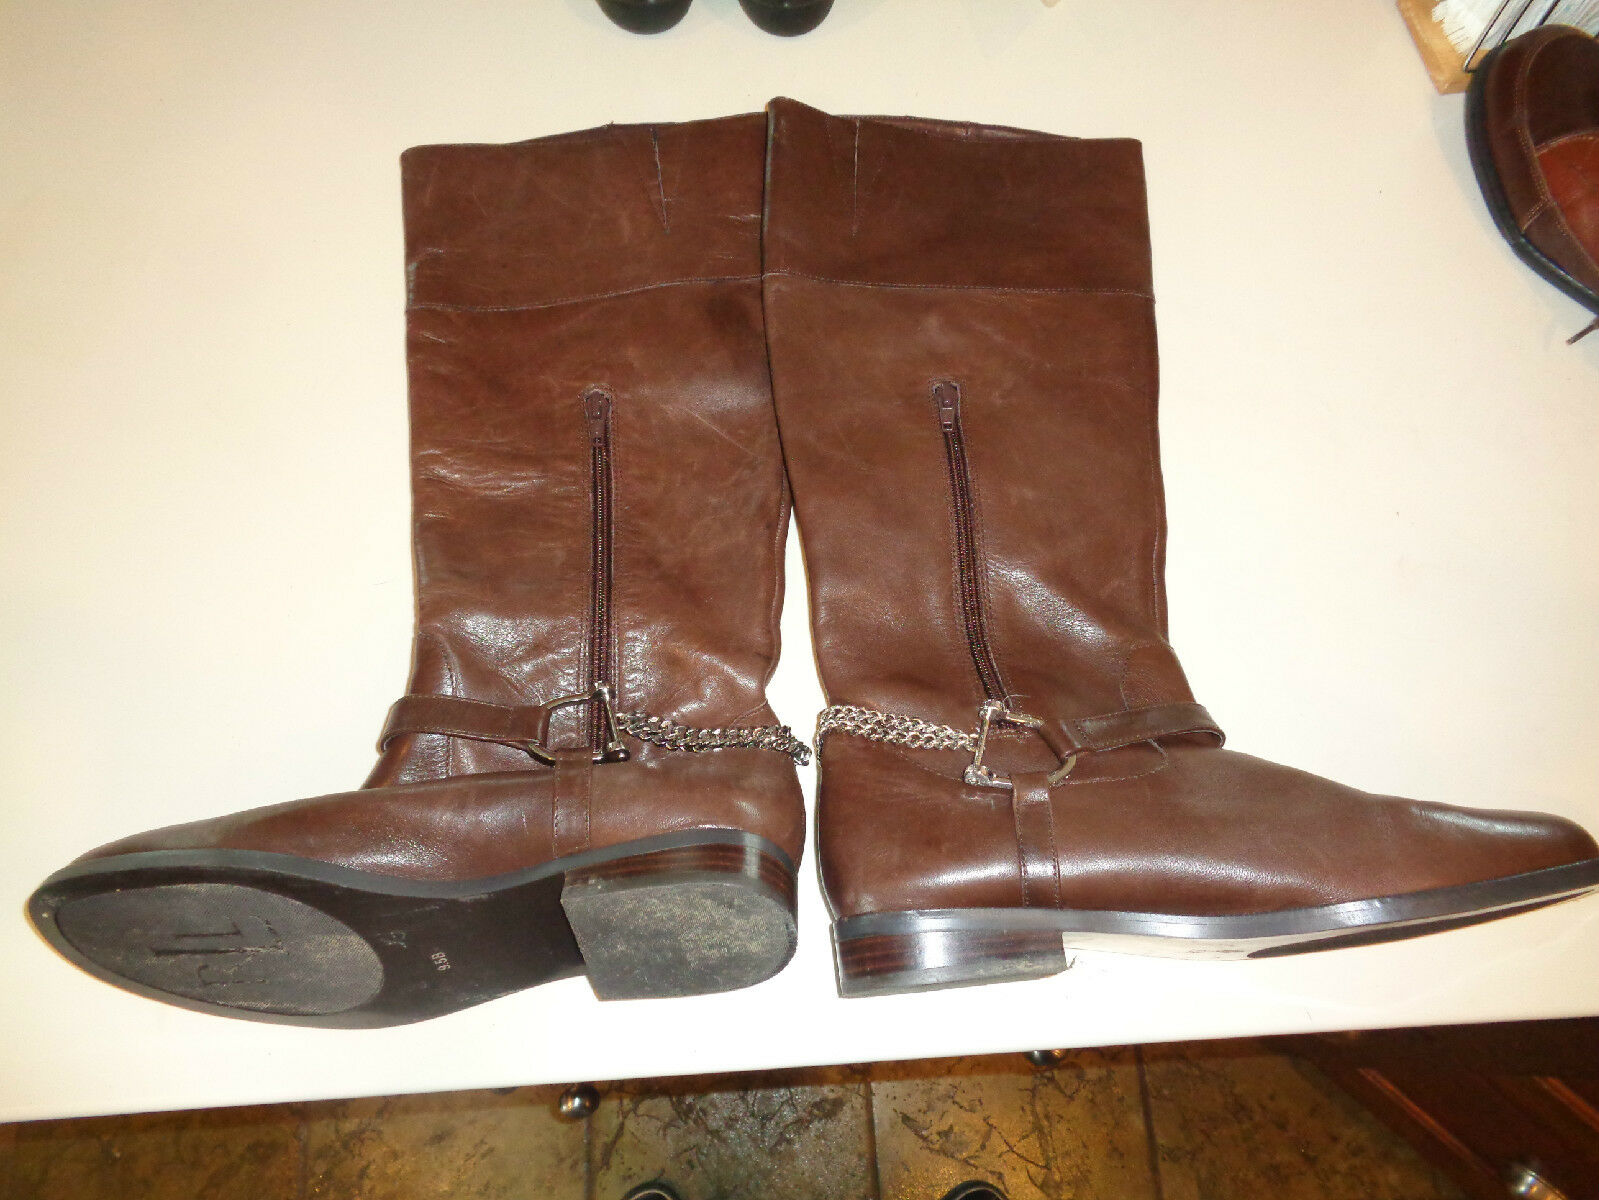 RALPH LAUREN Leather Jacqui Chain Fashion Boots Women Size 9.5 (US) MSRP